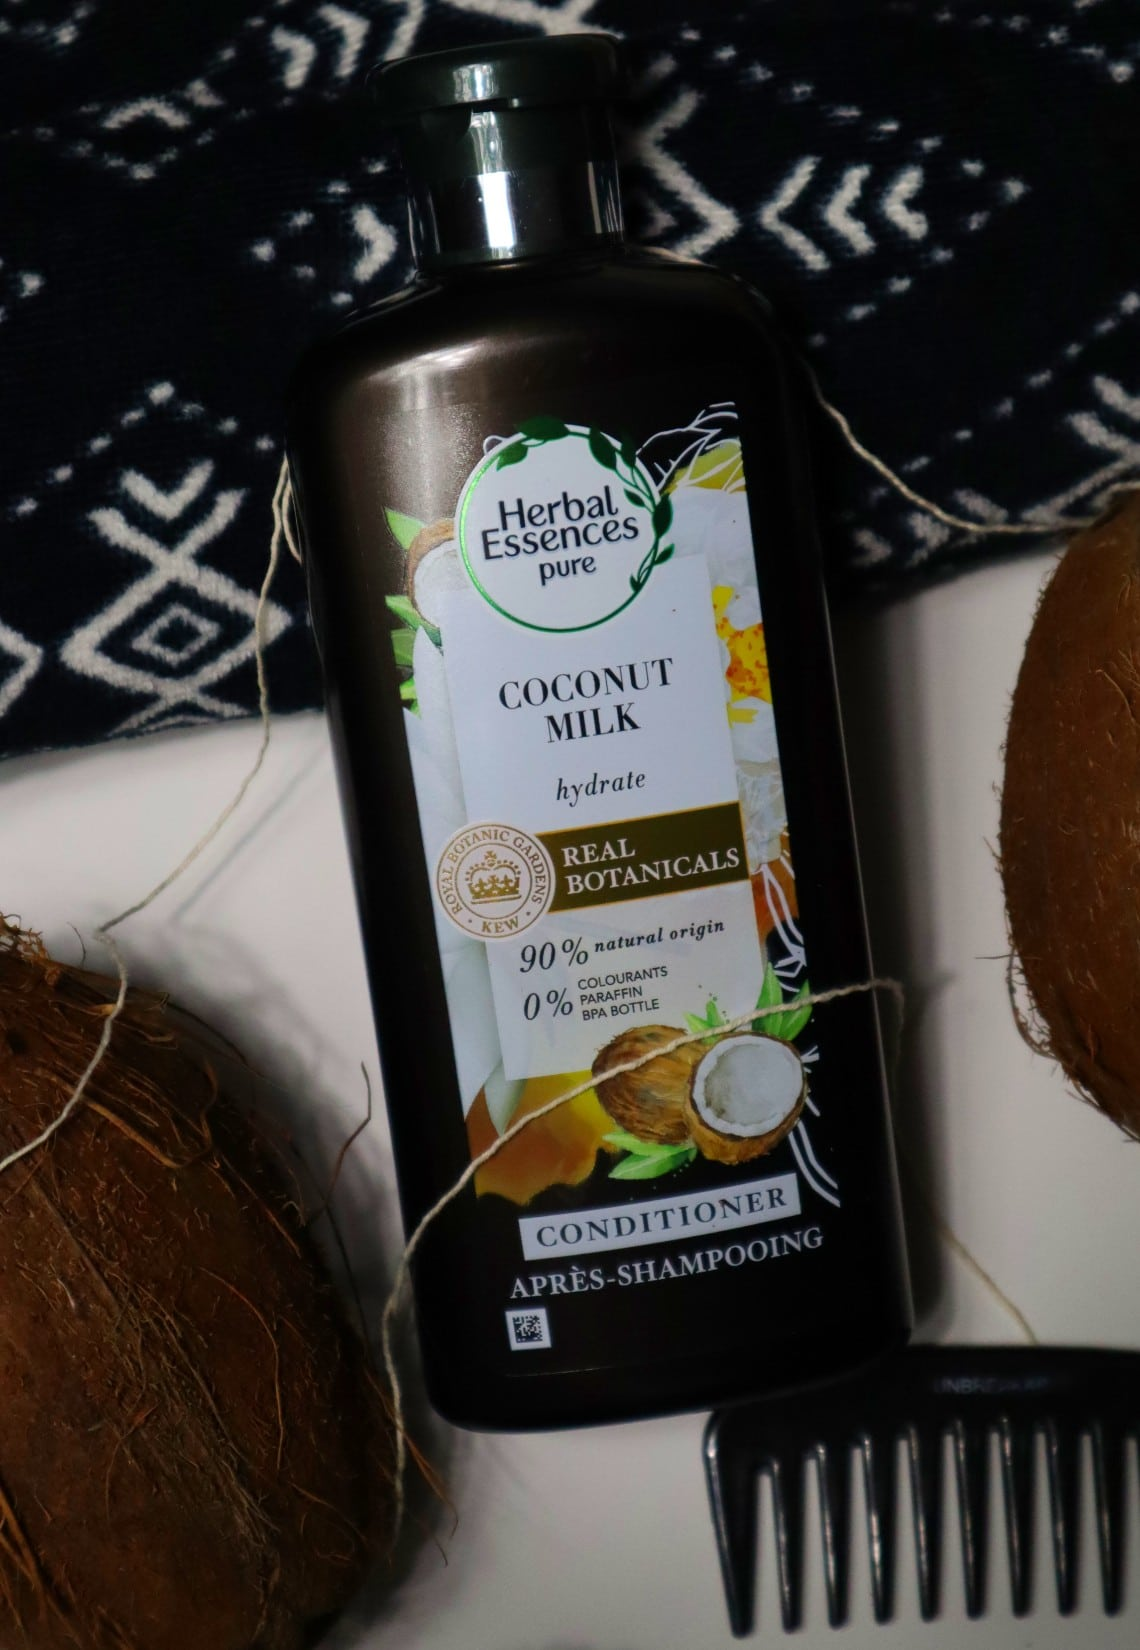 Herbal Essences Coconut Milk Conditioner